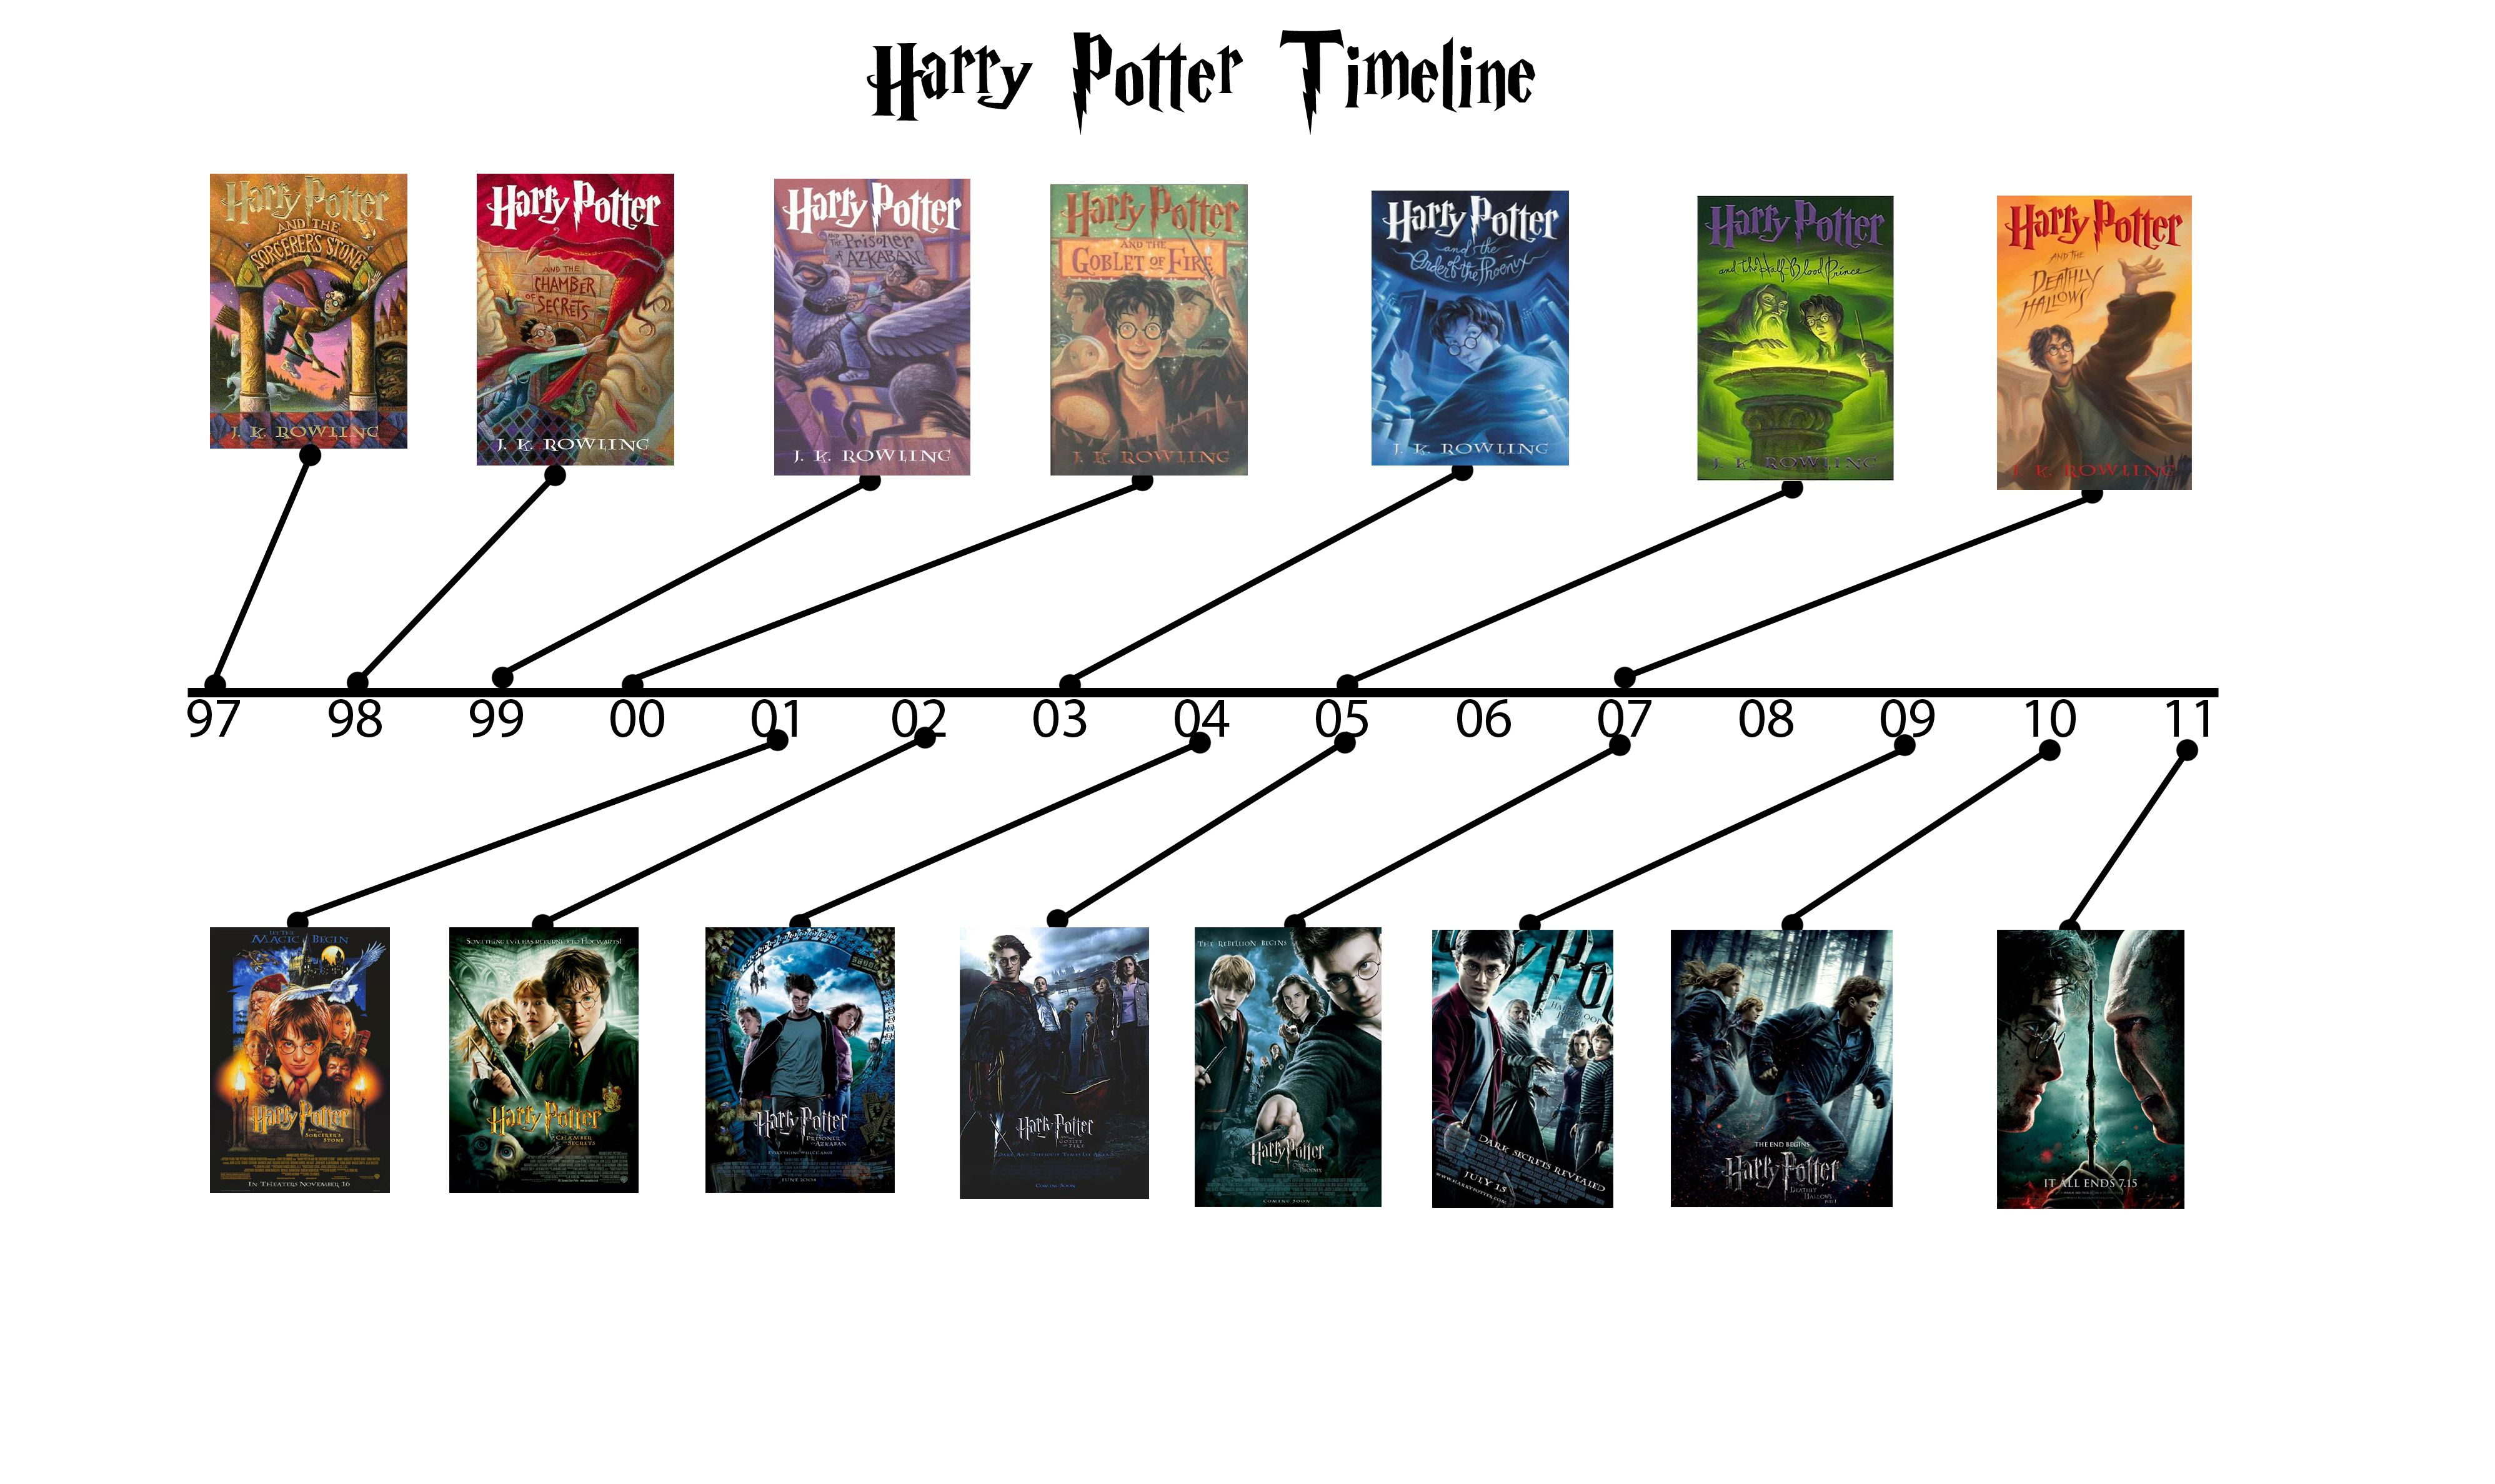 Harry Potter Harry Potter Timeline Harry Potter Books First Harry Potter Movie